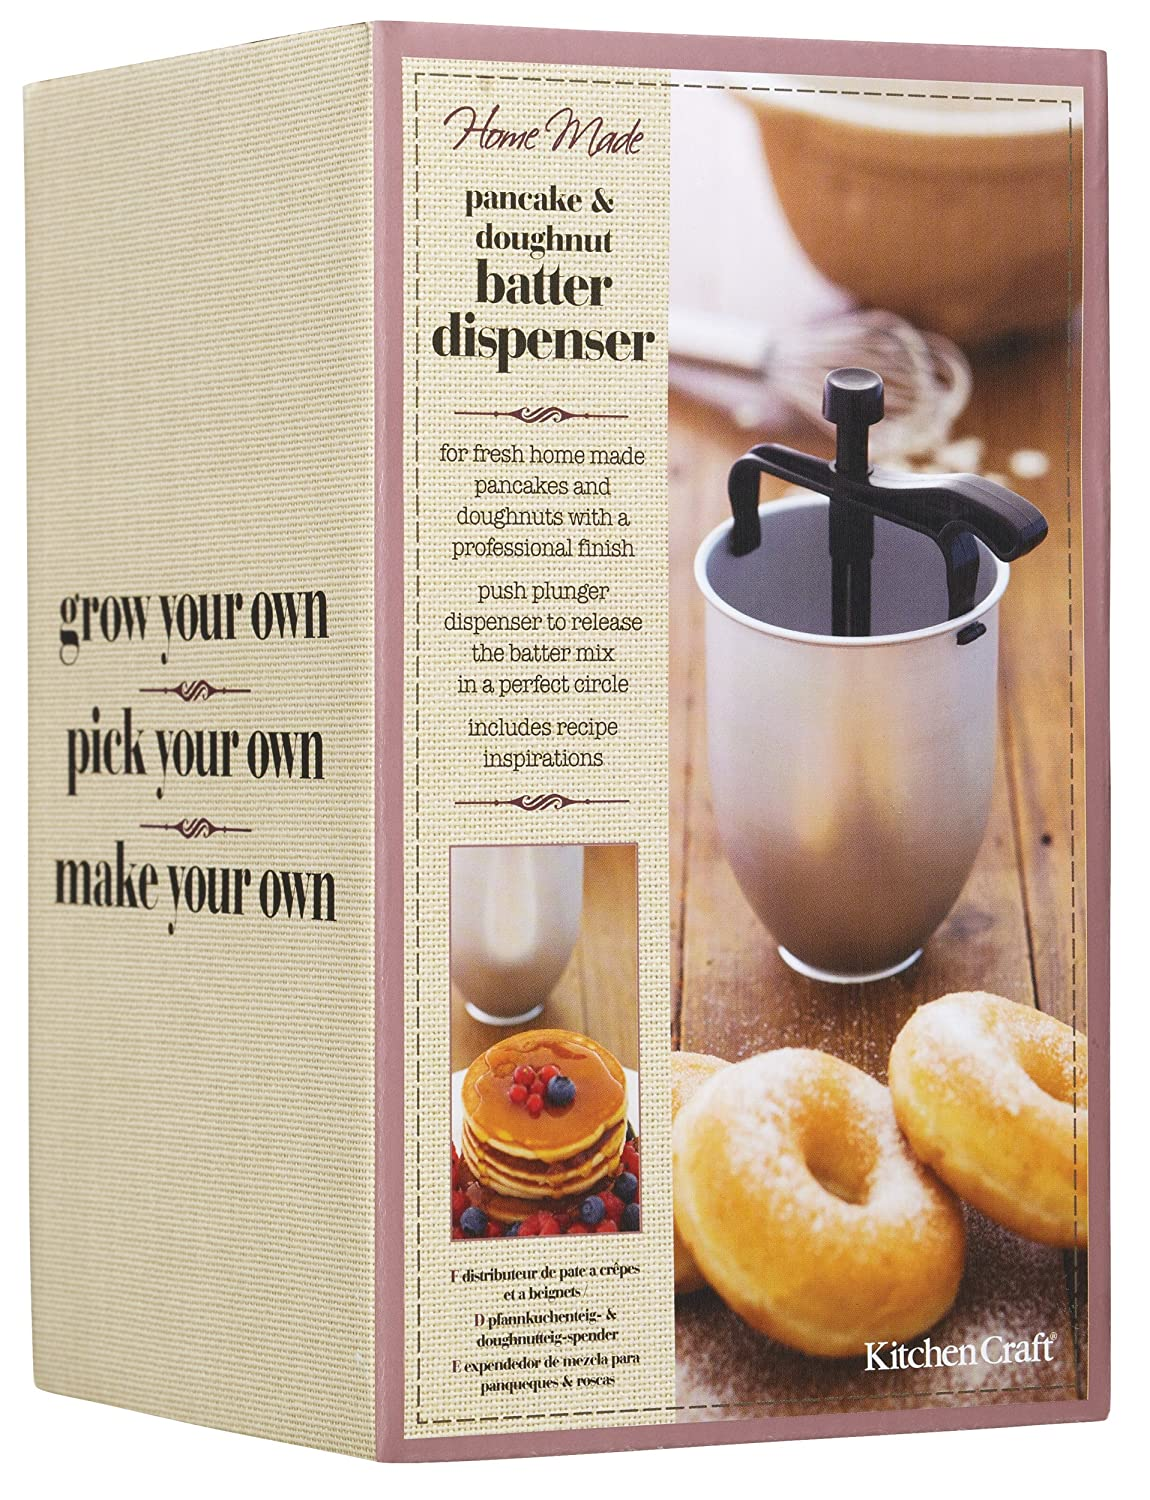 Compra Home Made Dispensador para Hacer Rosquillas Manual, Acero, Blanco, 11.2x11.2x18.8 cm en Amazon.es